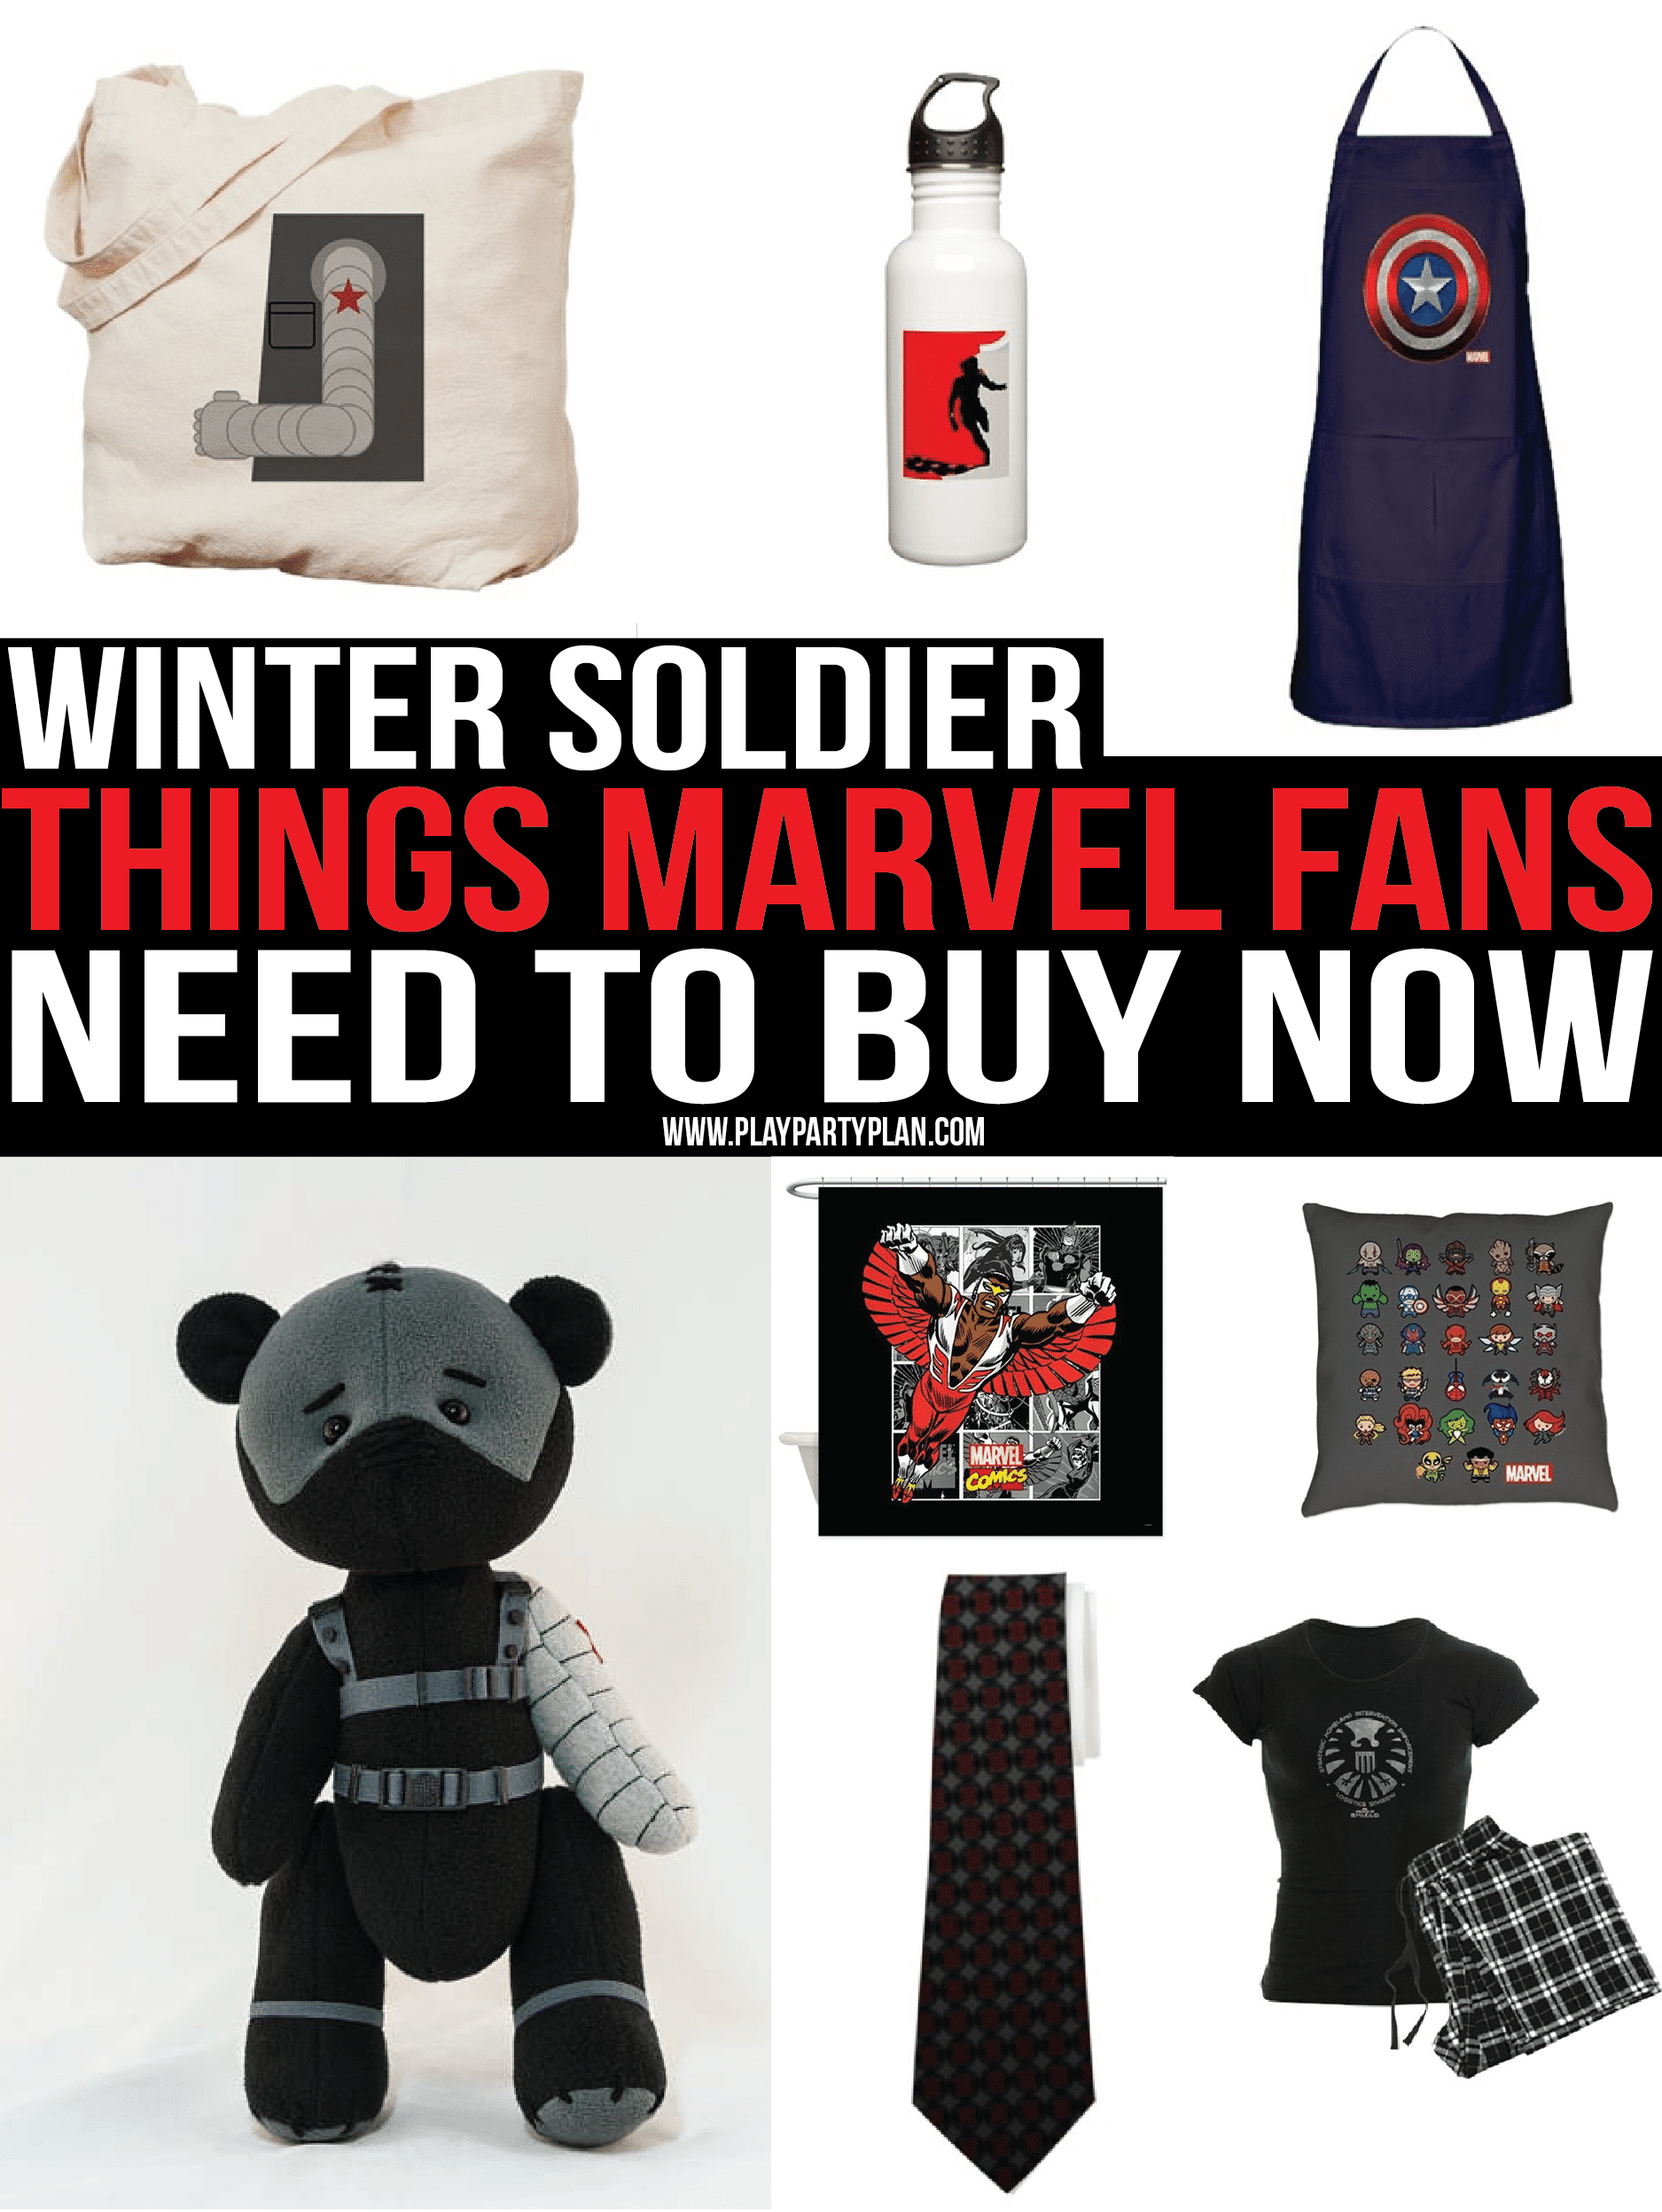 The ultimate list of Winter Soldier gear for any true Marvel fan! Marvel shirts, bags, and more! Perfect for the wait until Infinity War!